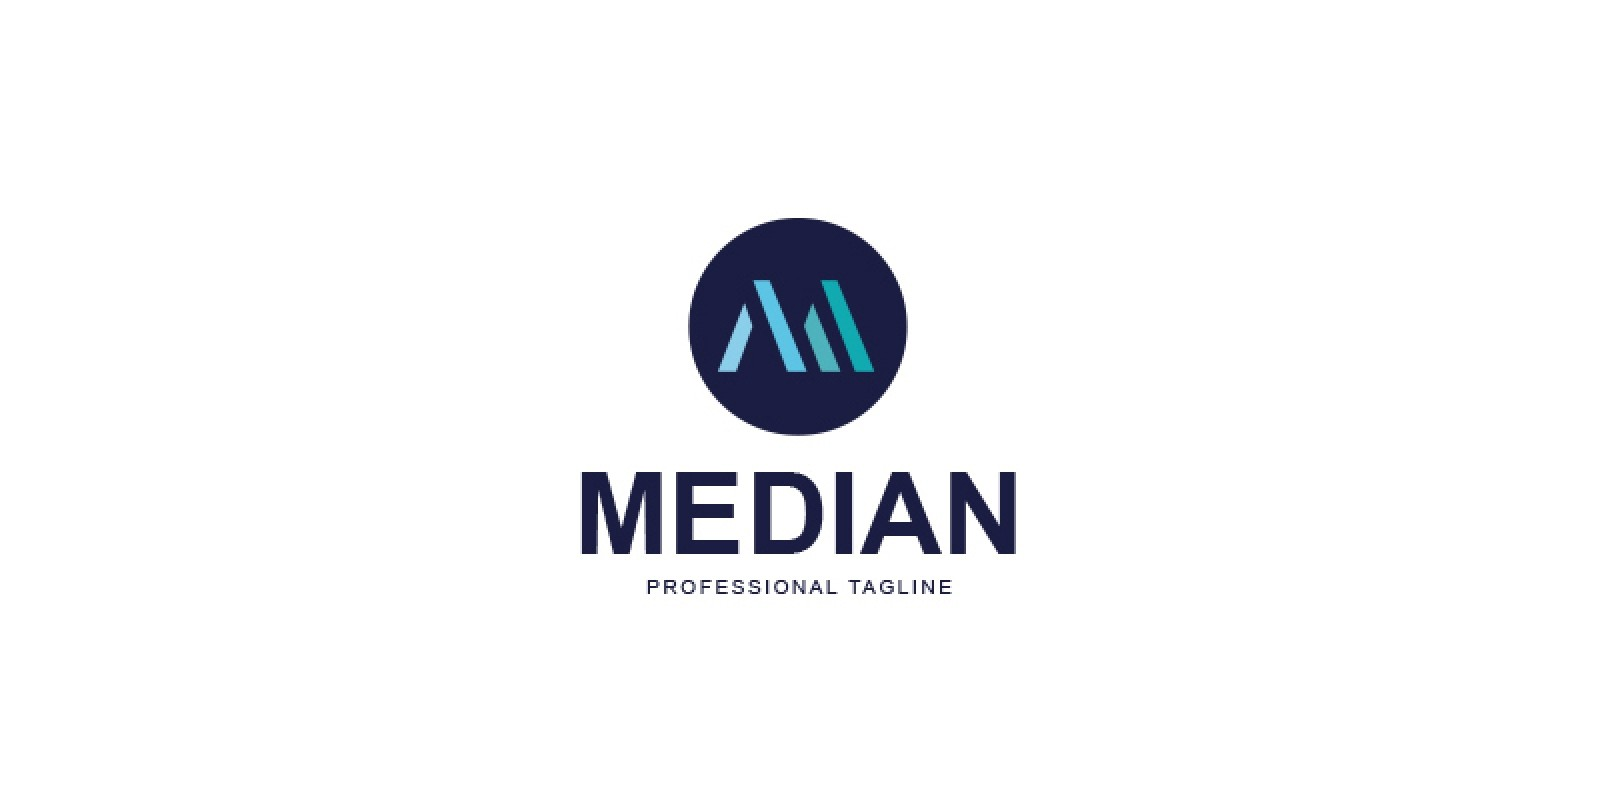 Median Logo Design